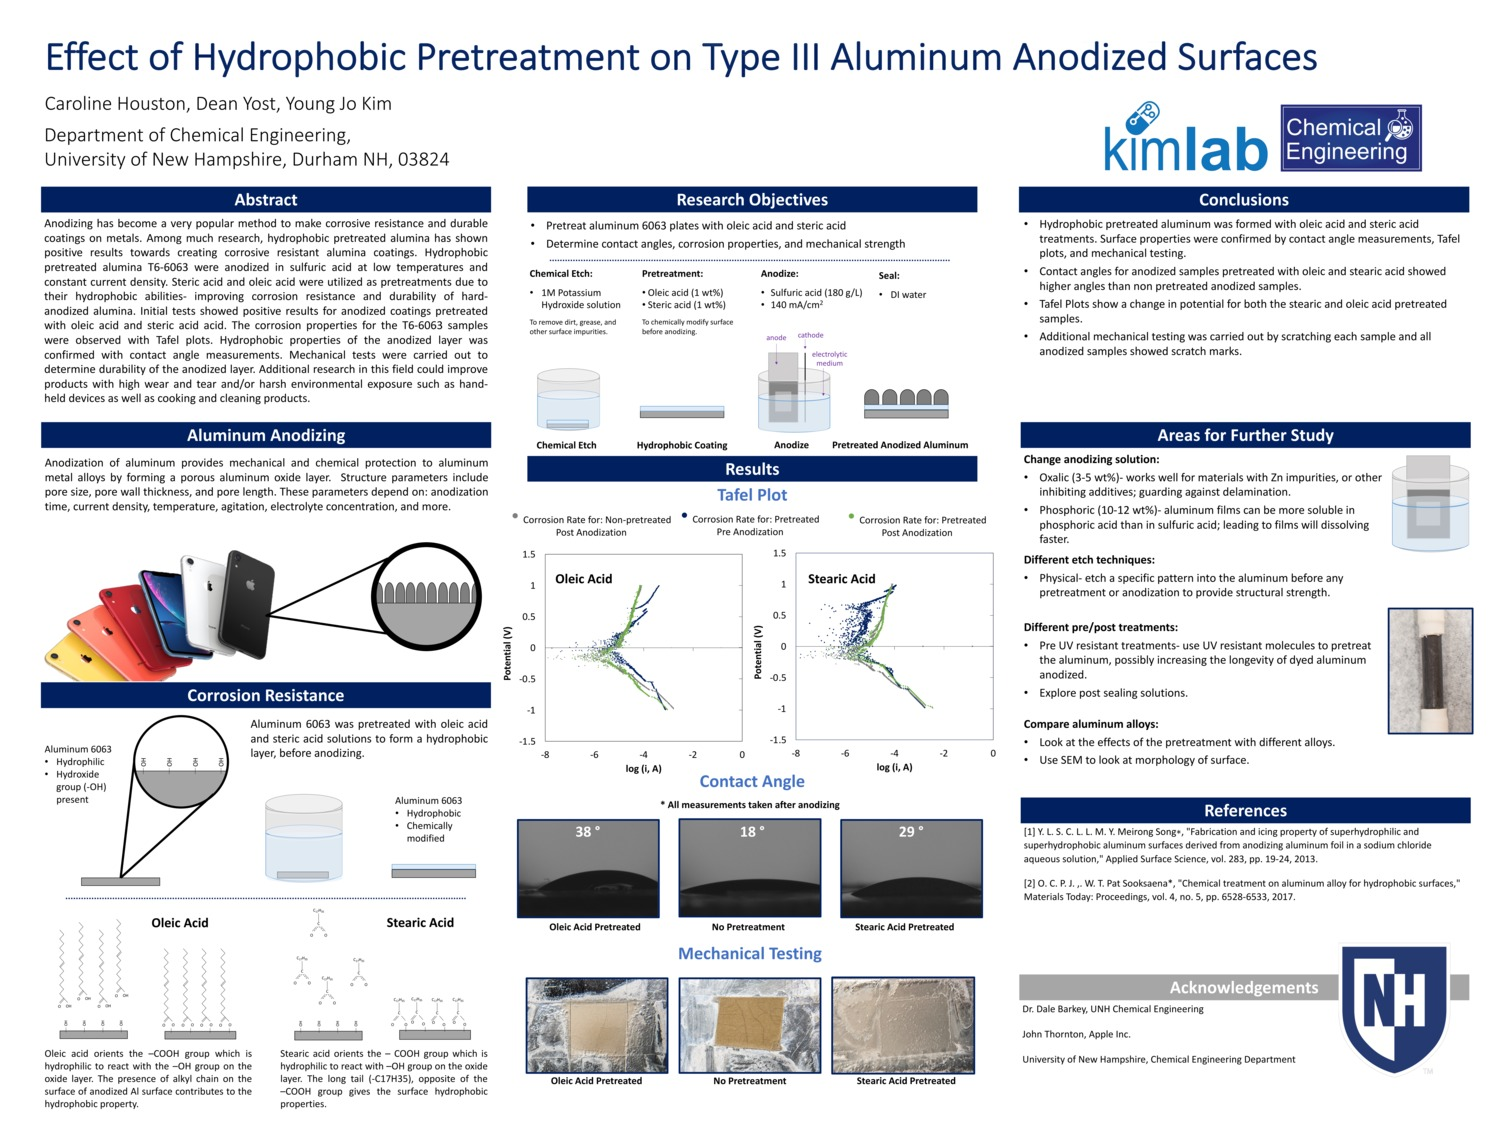 Effect Of Hydrophobic Pretreatment On Type Iii Aluminum Anodized Surfaces by ch1031